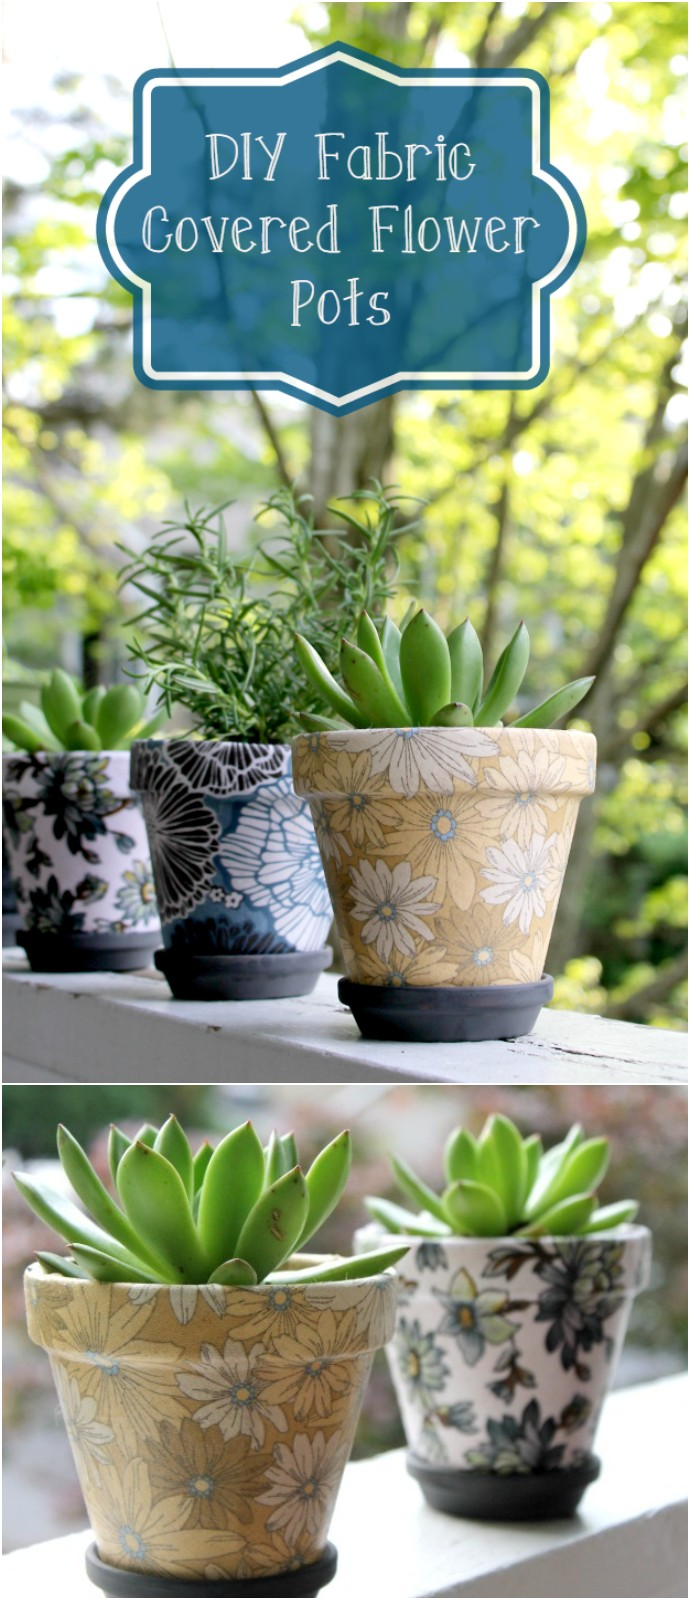 Easy To Make Diy Fabric Covered Flower Pots